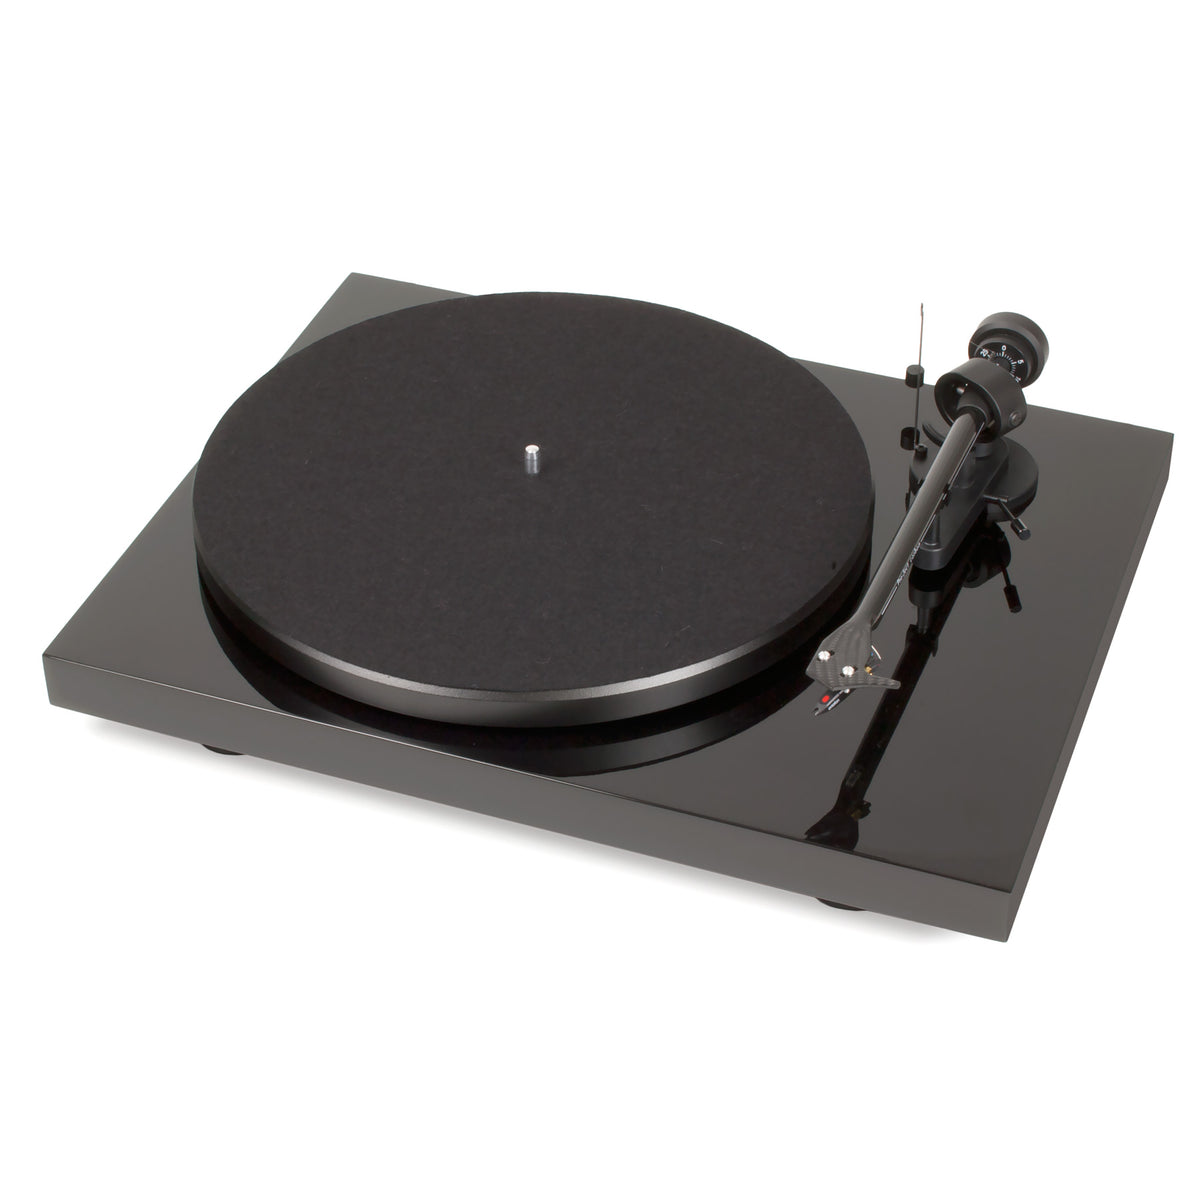 Pro-Ject: Debut Carbon DC USB Turntable - Gloss Black